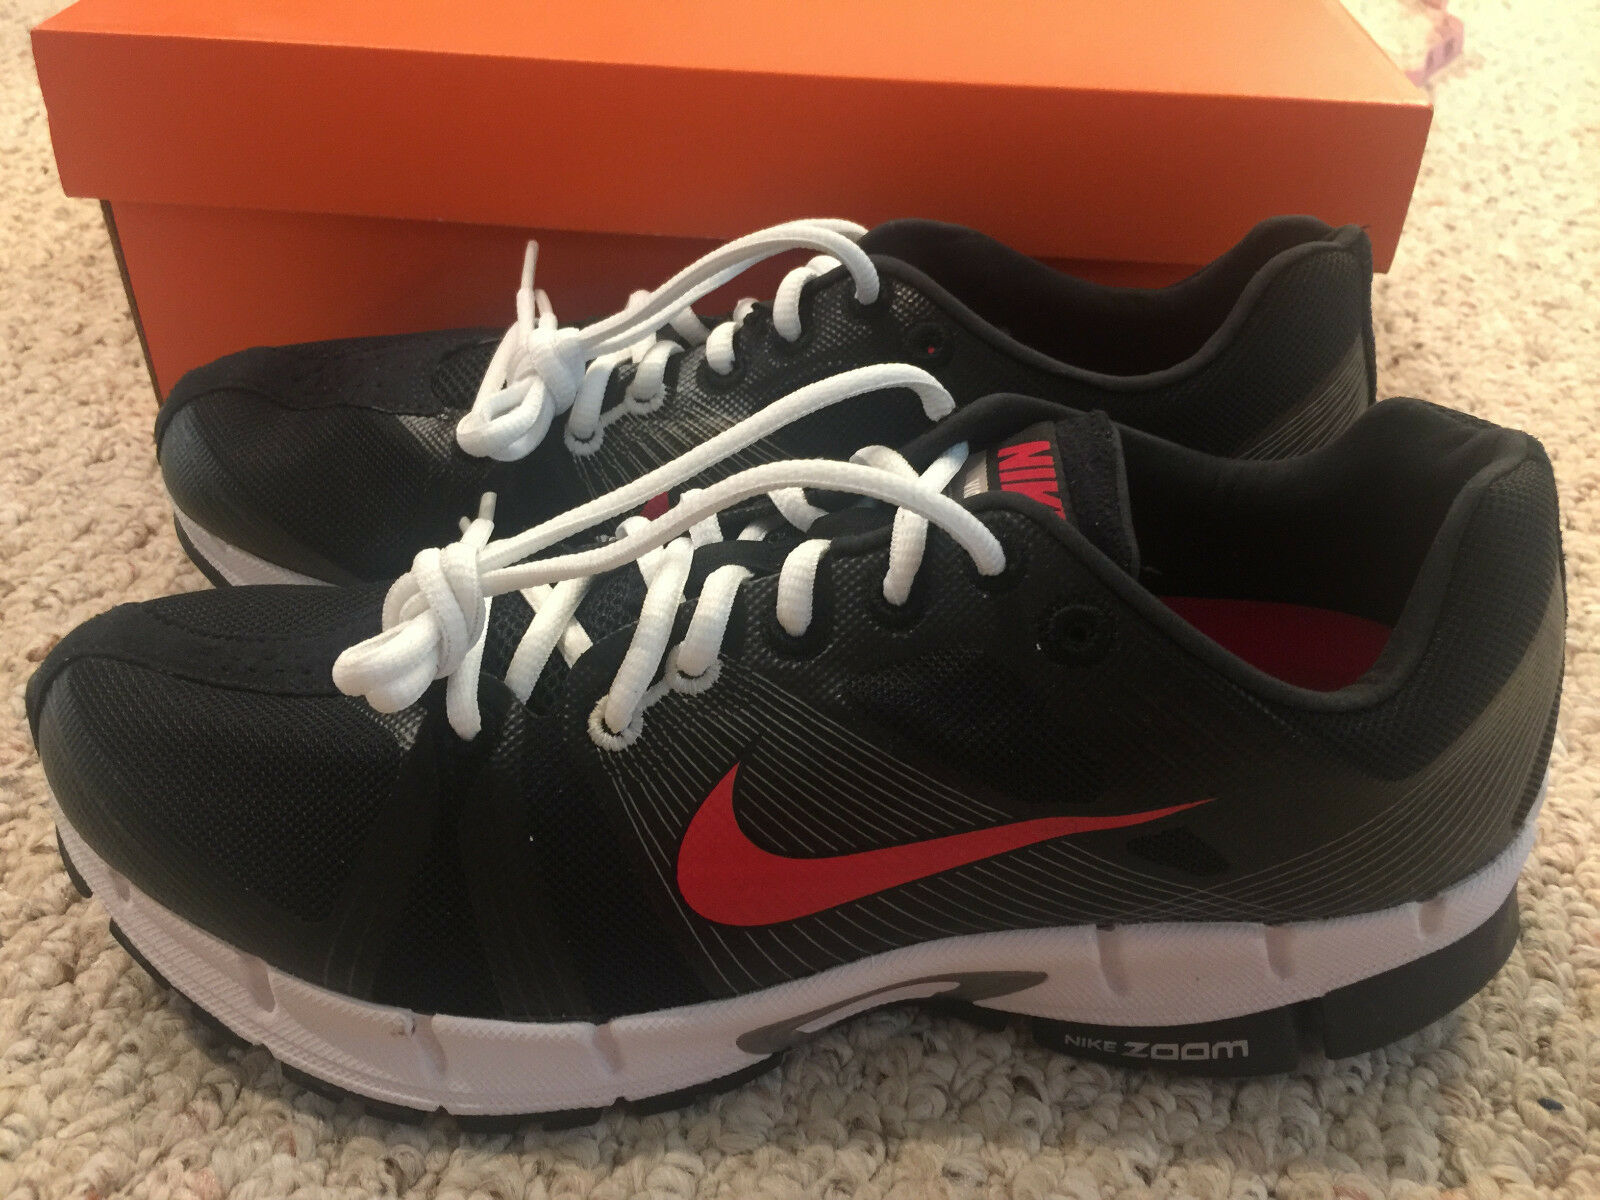 NEW IN BOX -- Nike Zoom Victory+ Victory Men's Athletic Shoes 10 Black/Red